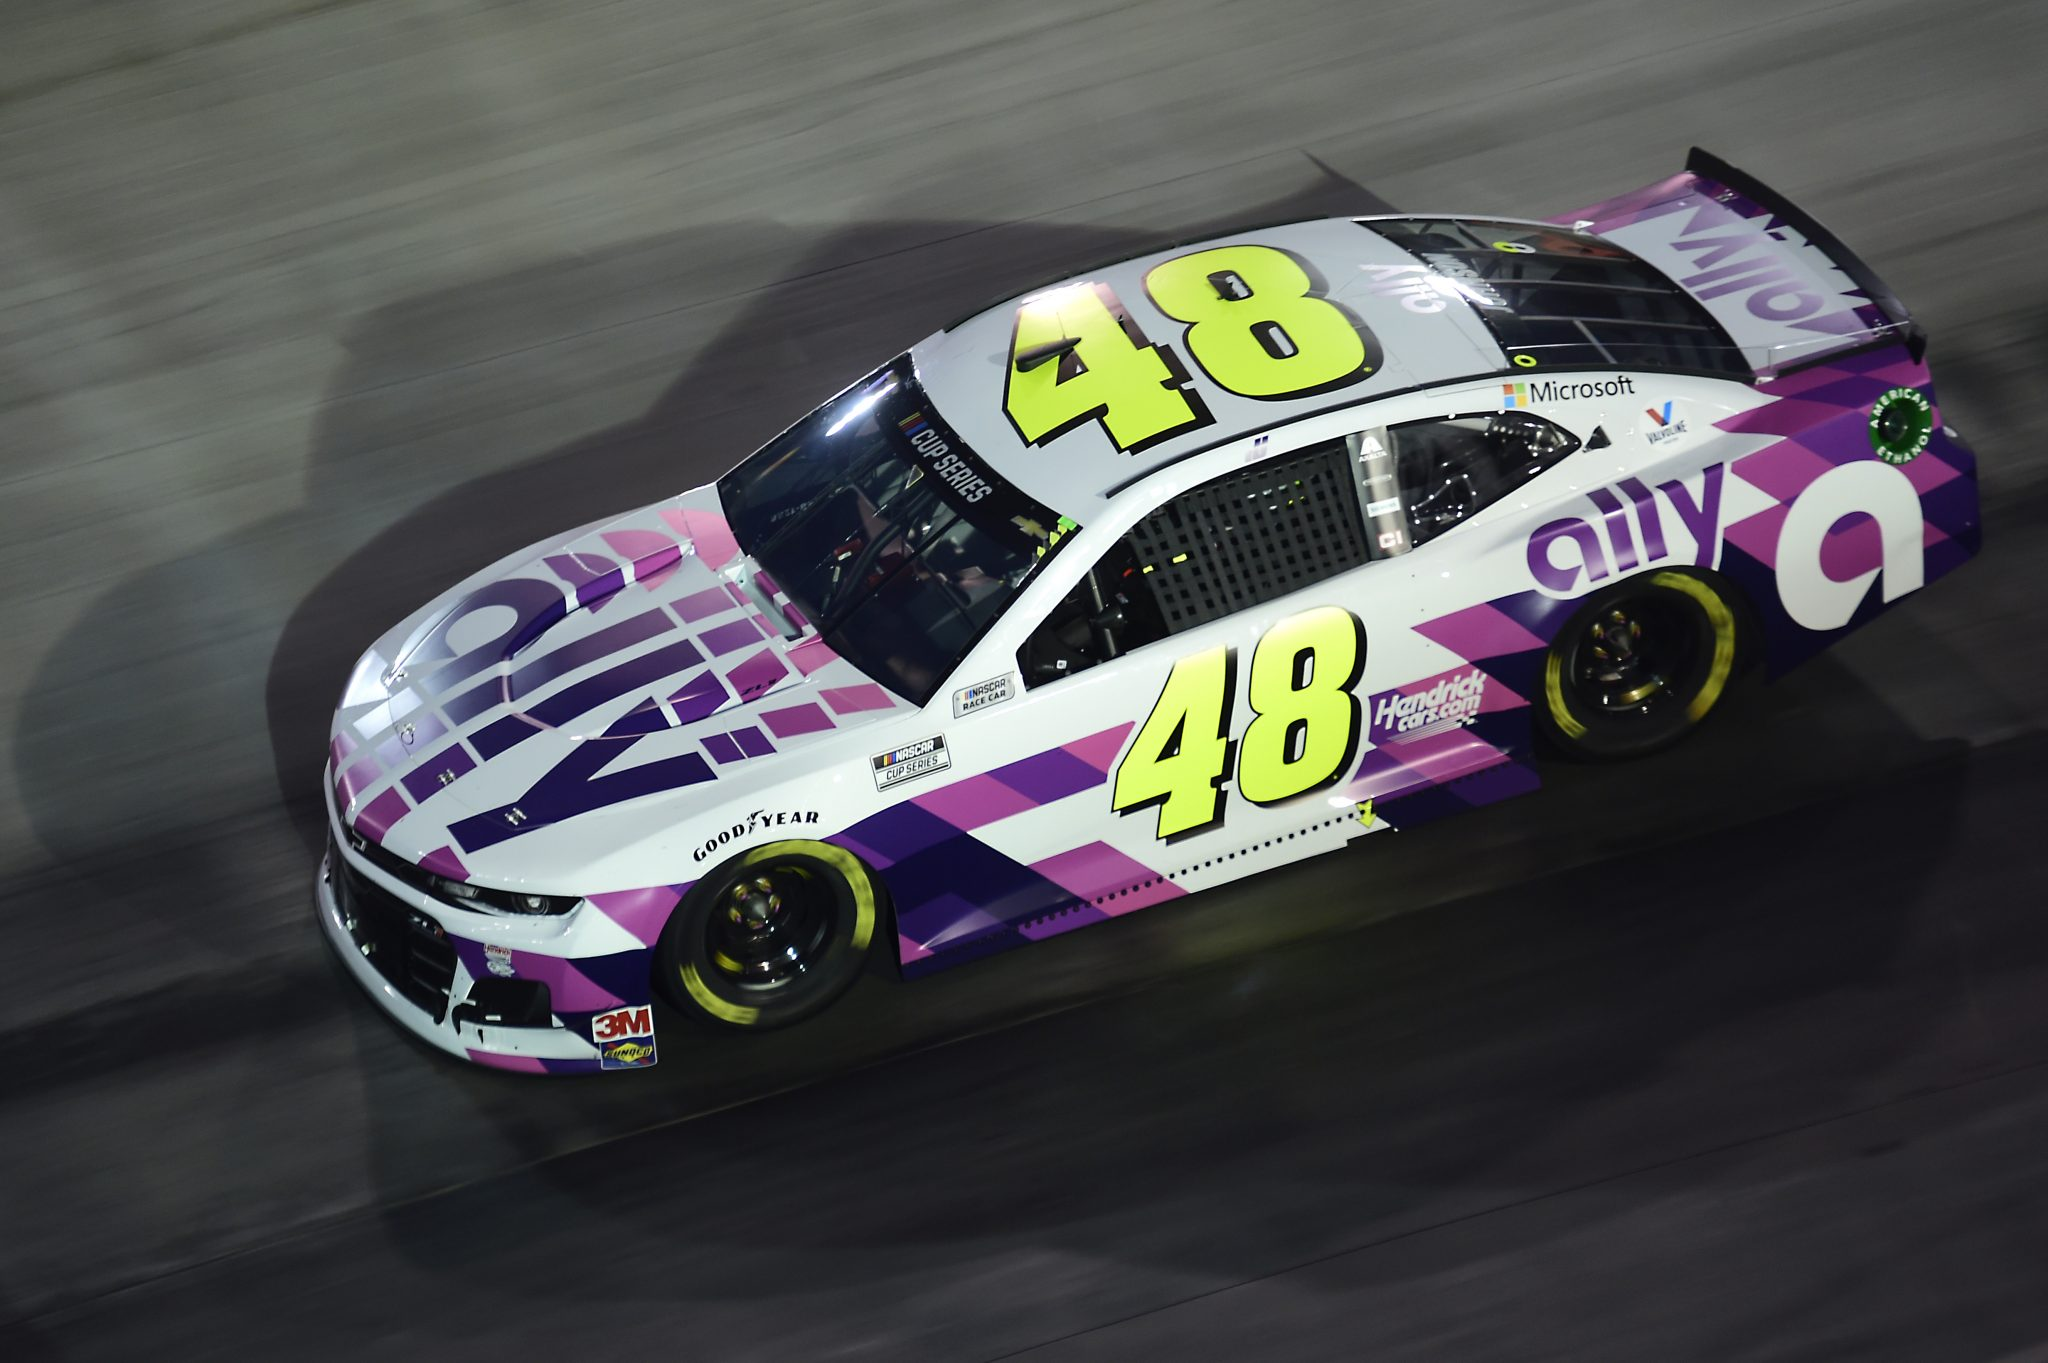 BRISTOL, TENNESSEE - SEPTEMBER 19: Jimmie Johnson, driver of the #48 Ally Chevrolet, drives during the NASCAR Cup Series Bass Pro Shops Night Race at Bristol Motor Speedway on September 19, 2020 in Bristol, Tennessee. (Photo by Jared C. Tilton/Getty Images) | Getty Images